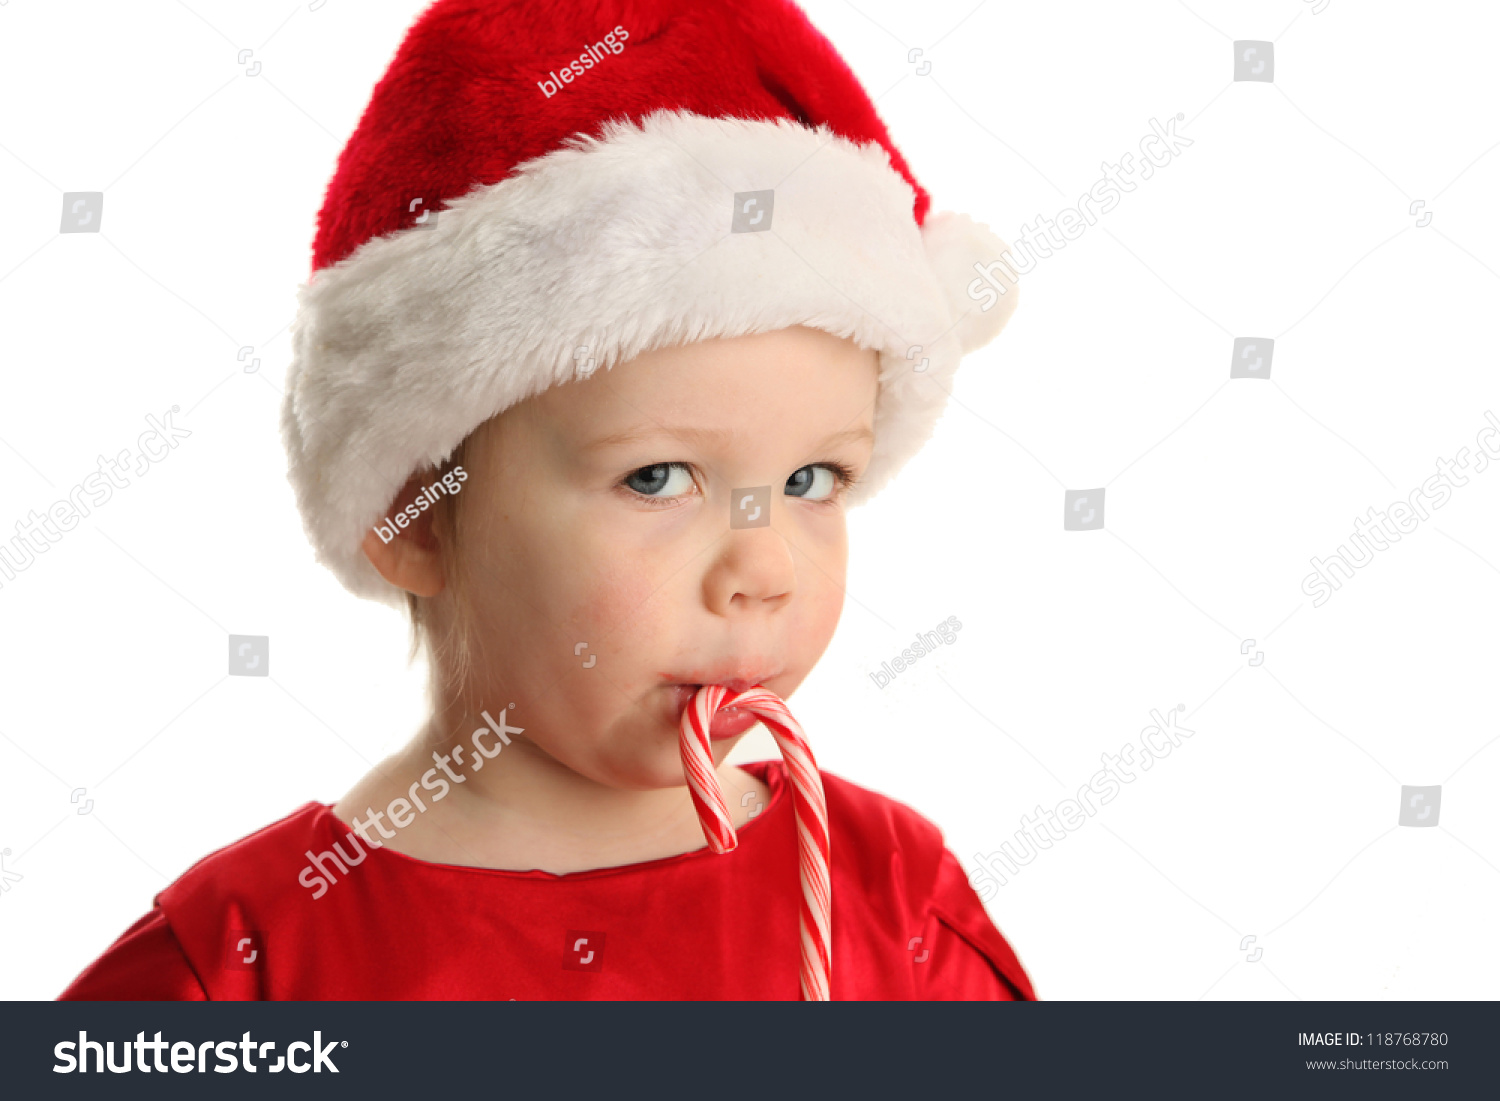 5177ce445c7c2 Christmas Portrait of a beautiful little child girl wearing a santa hat and  holding a candy